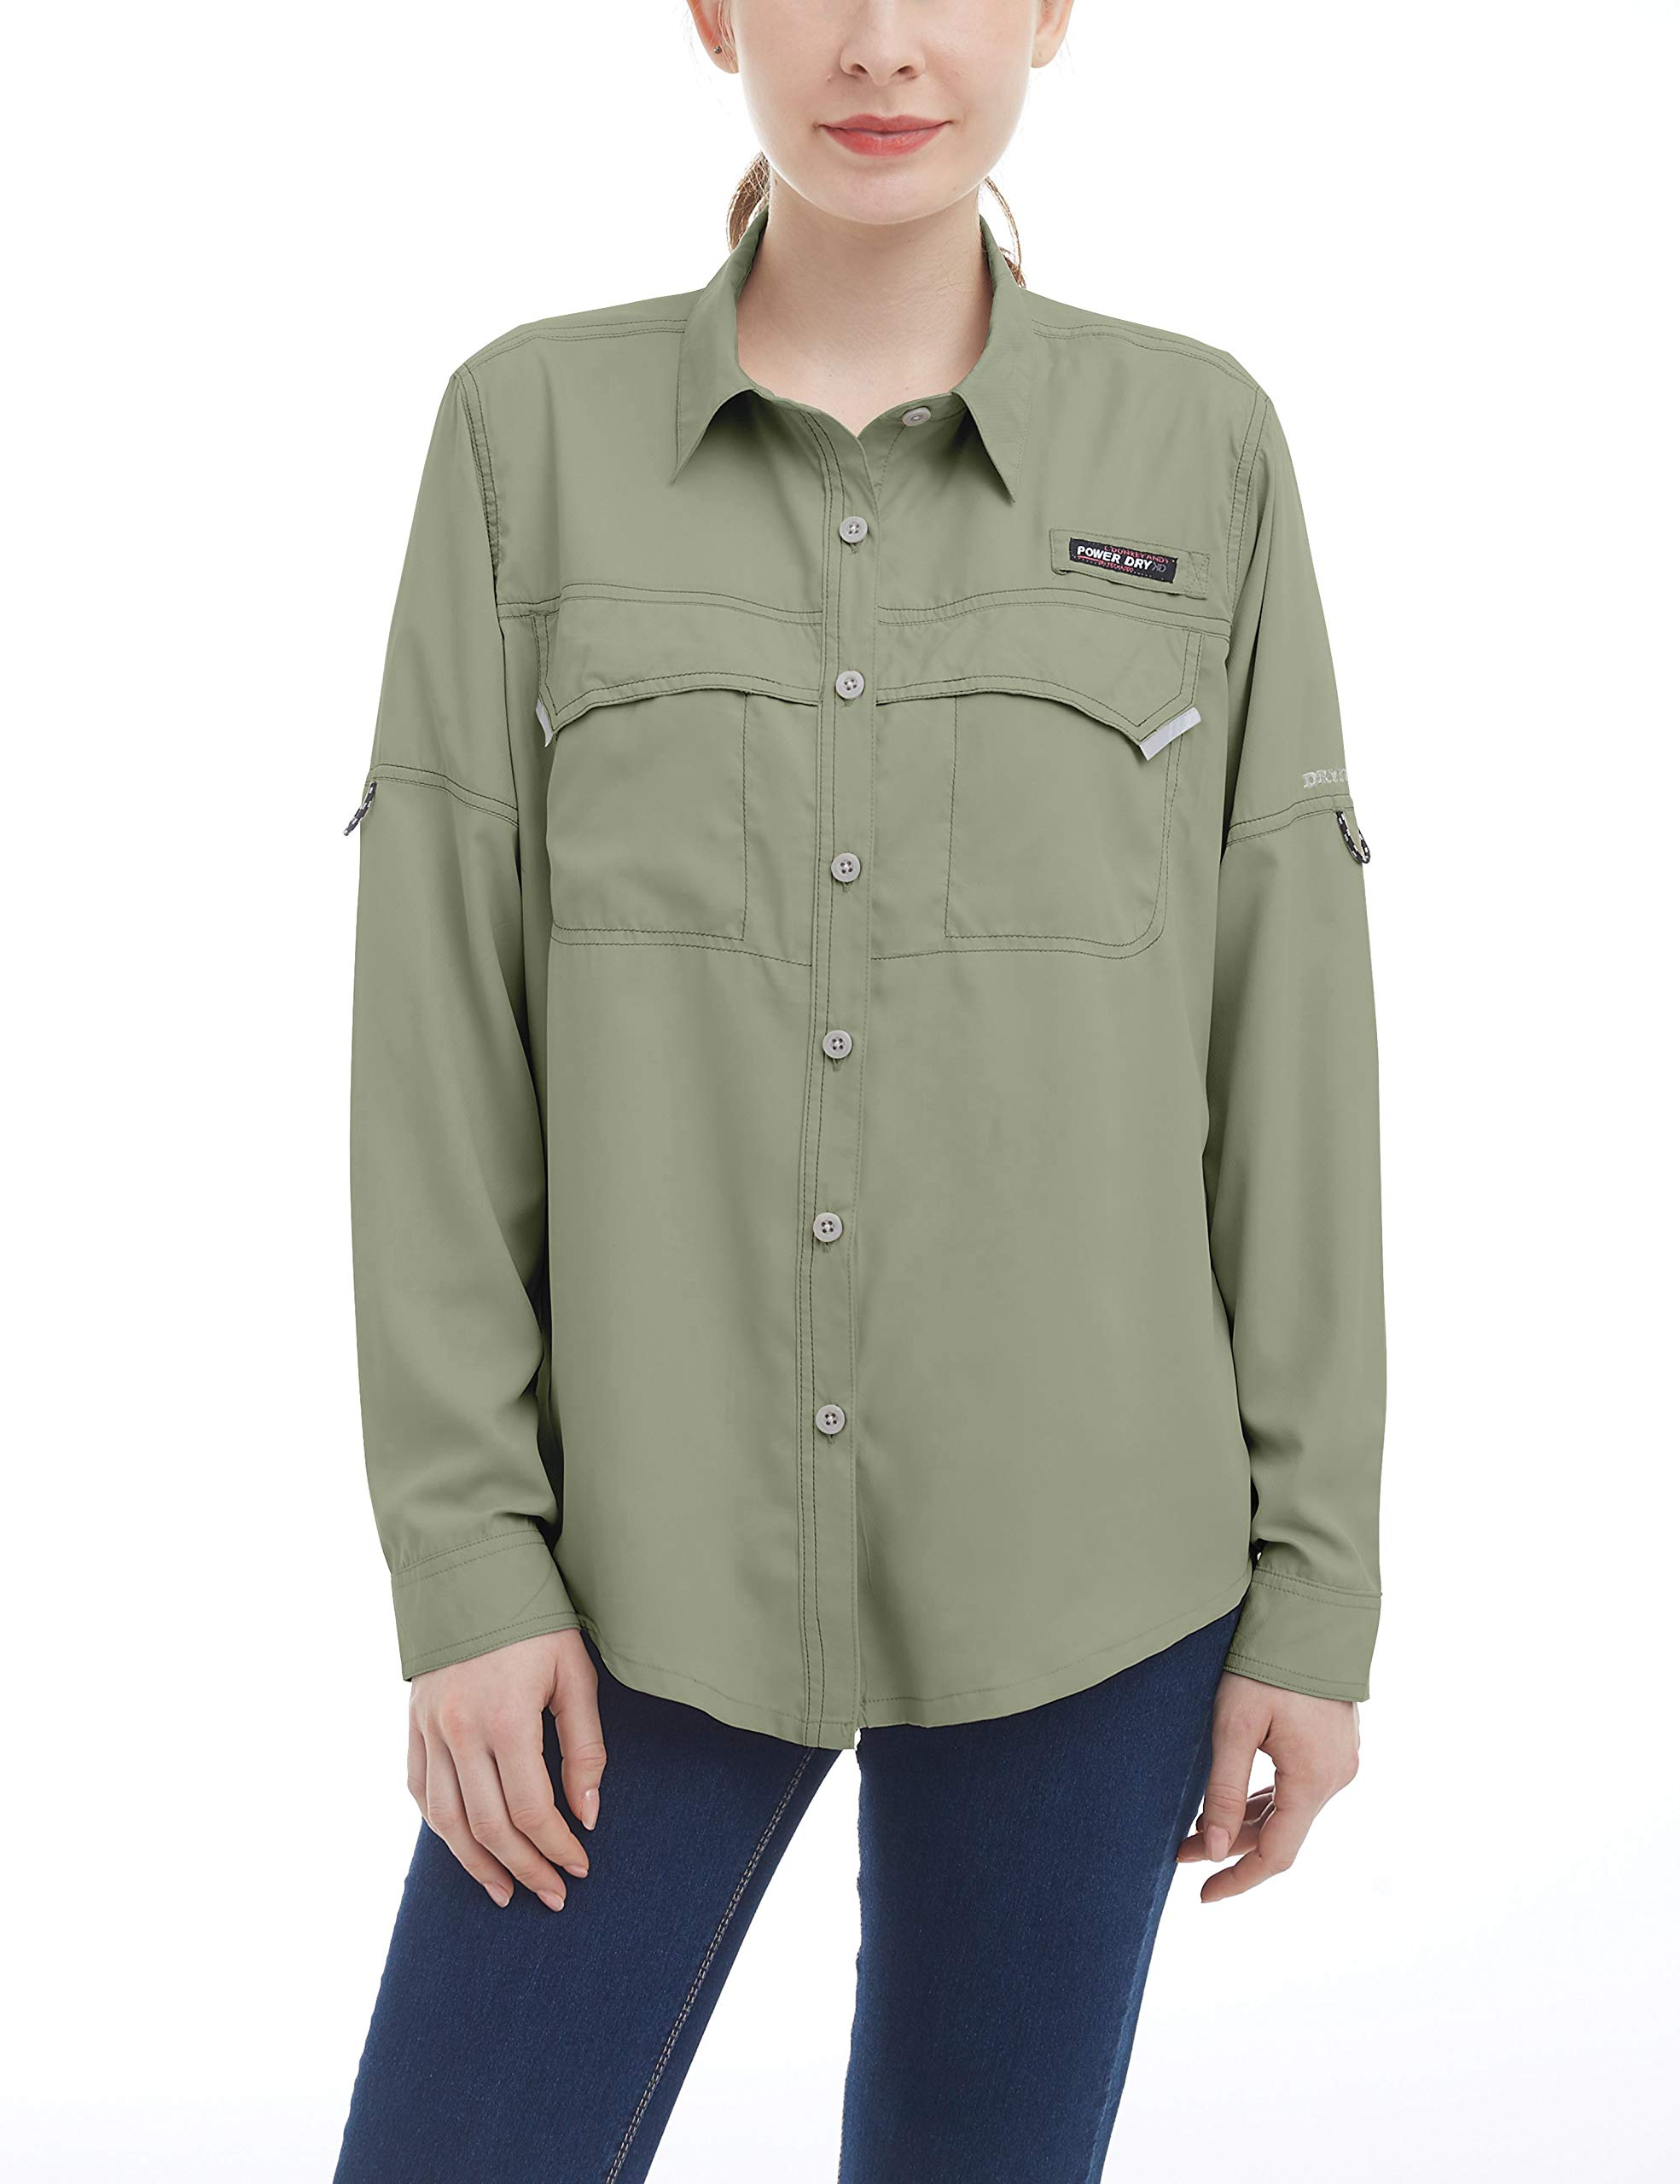 Little Donkey Andy Women's UPF 50+ UV Protection Shirt, Long Sleeve Fishing Shirt, Breathable and Fast Dry Tea XS by Little Donkey Andy